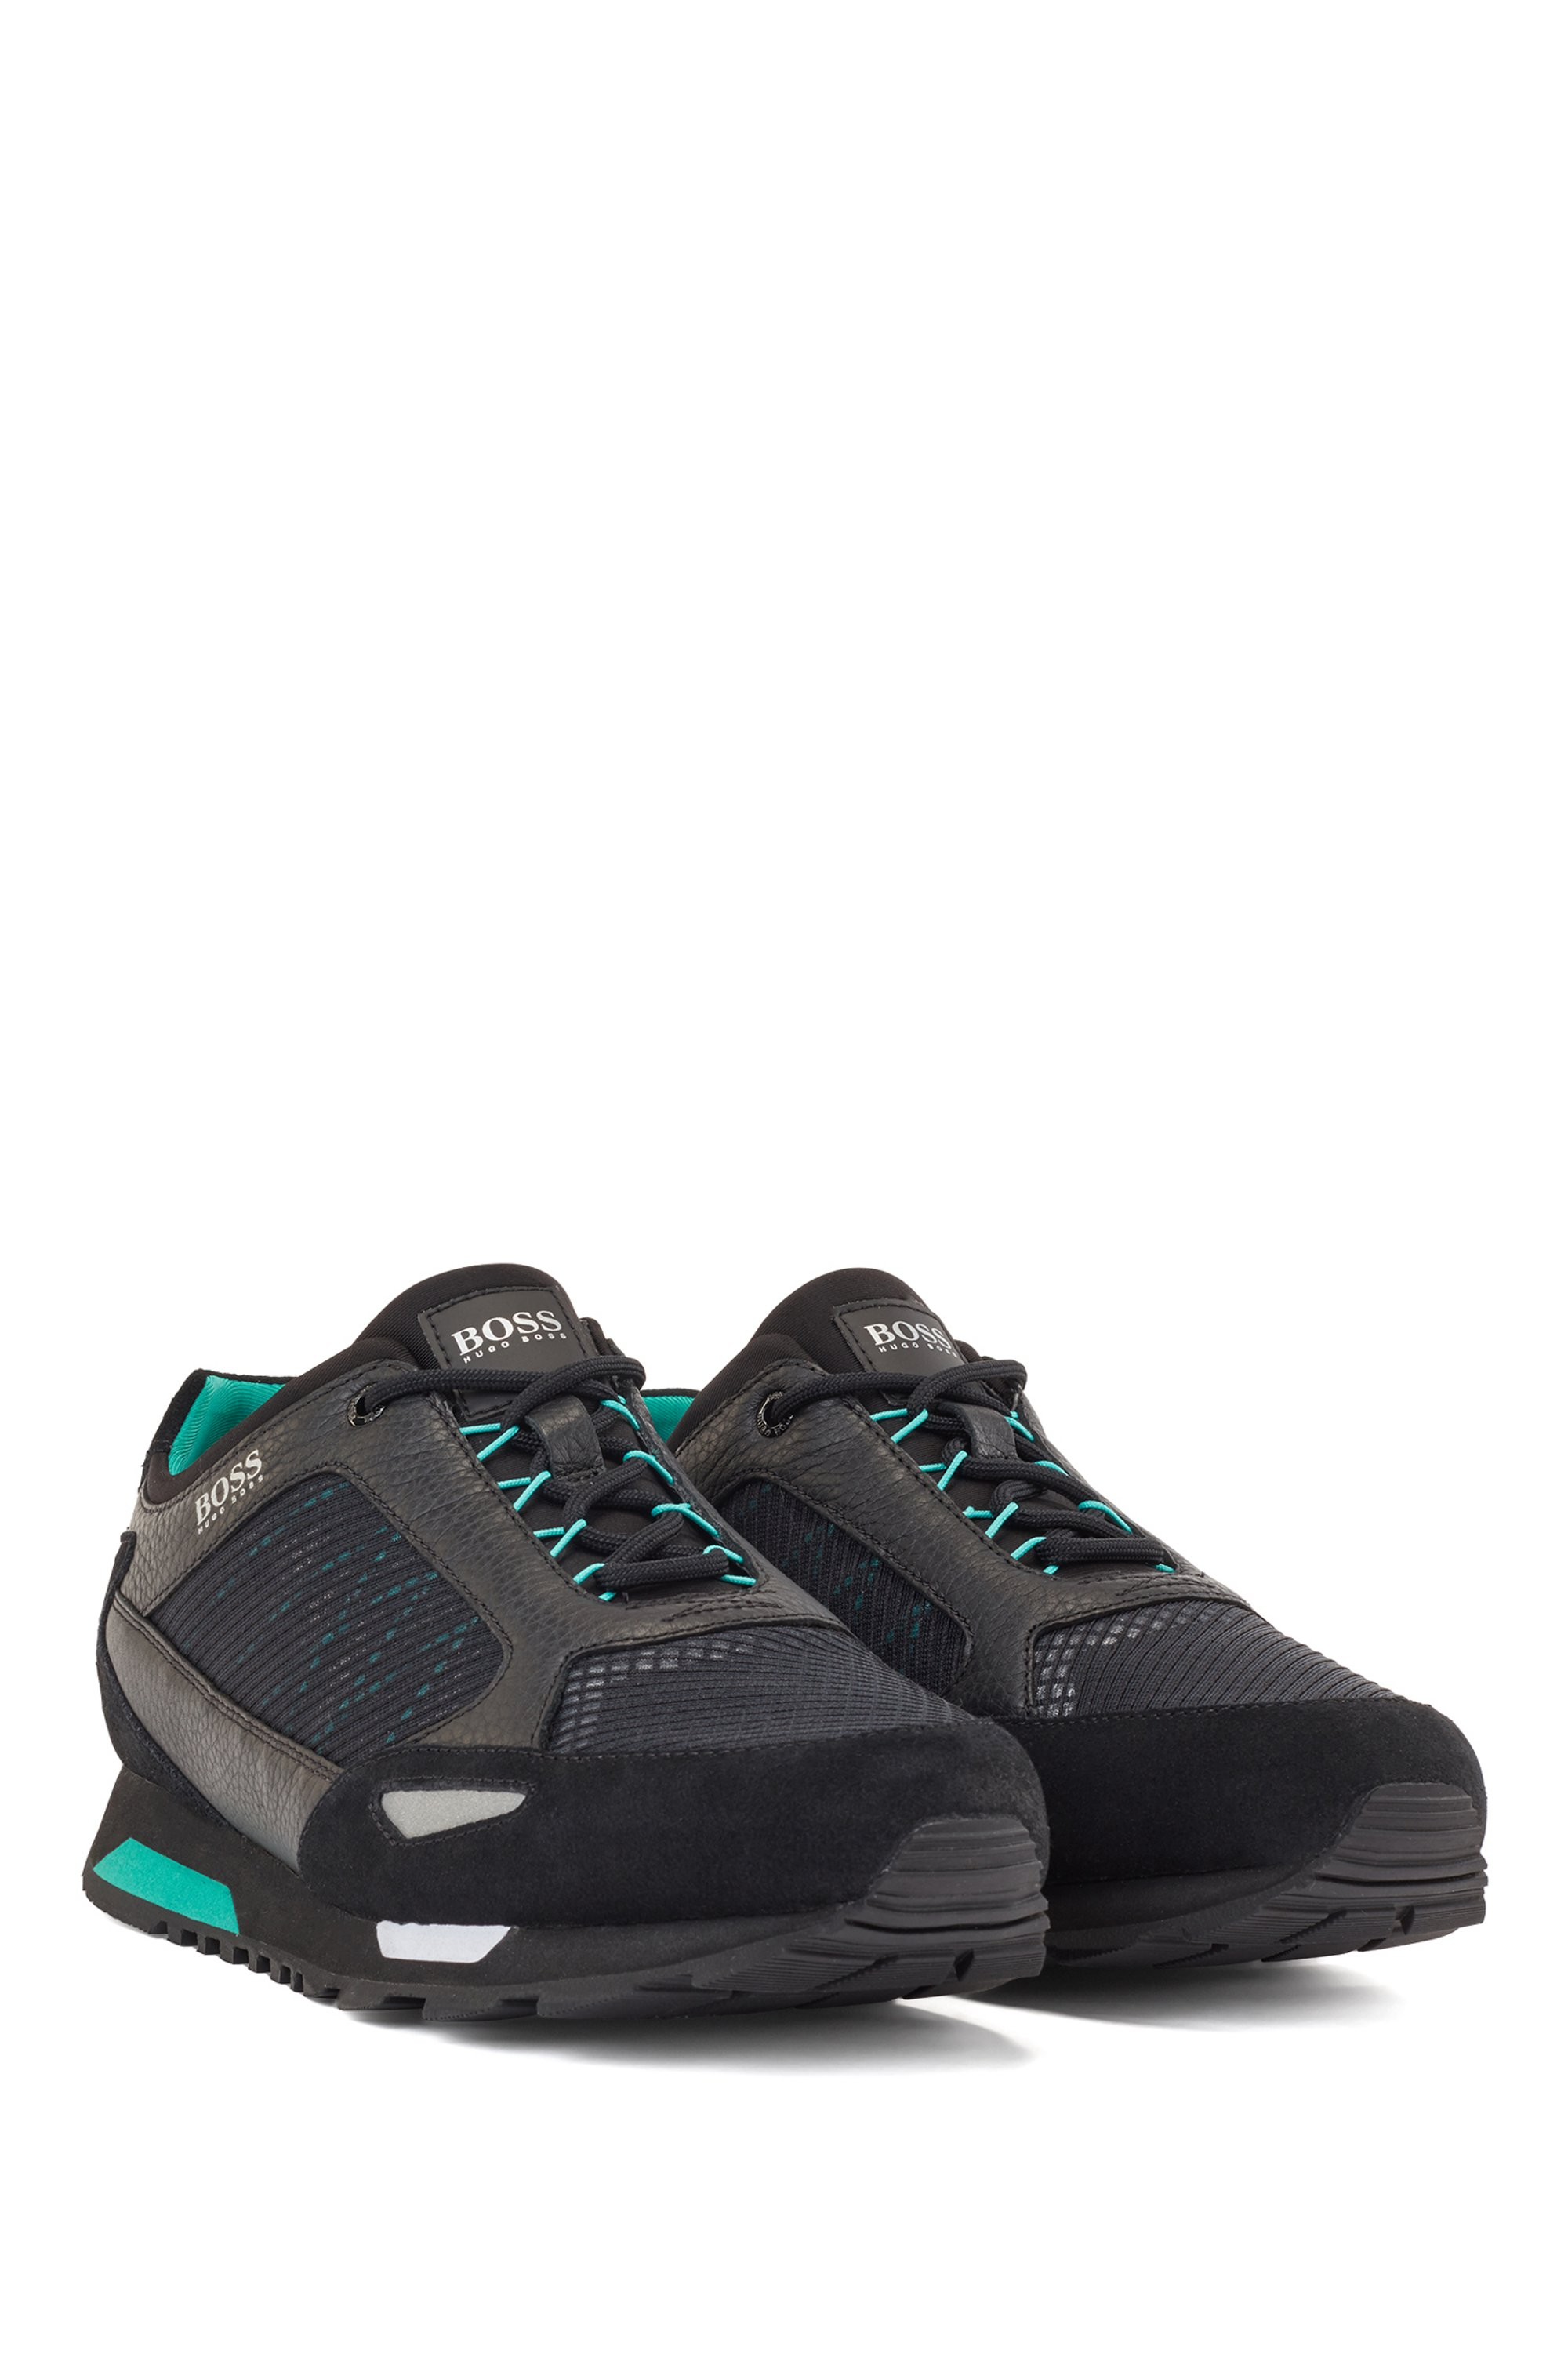 Running-style trainers in suede, leather and ripstop nylon